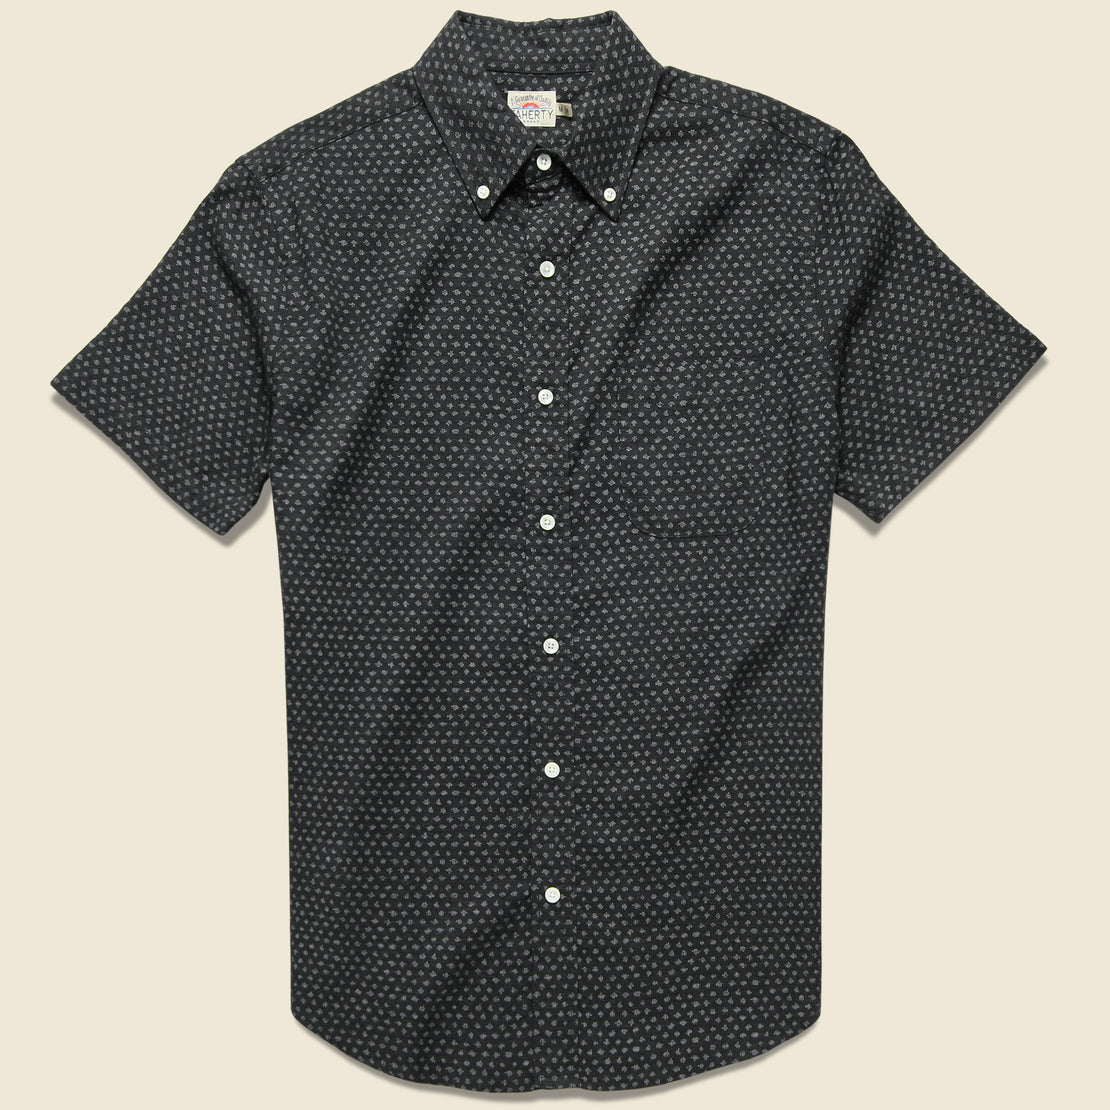 Faherty Pacific Shirt - Black Fleck